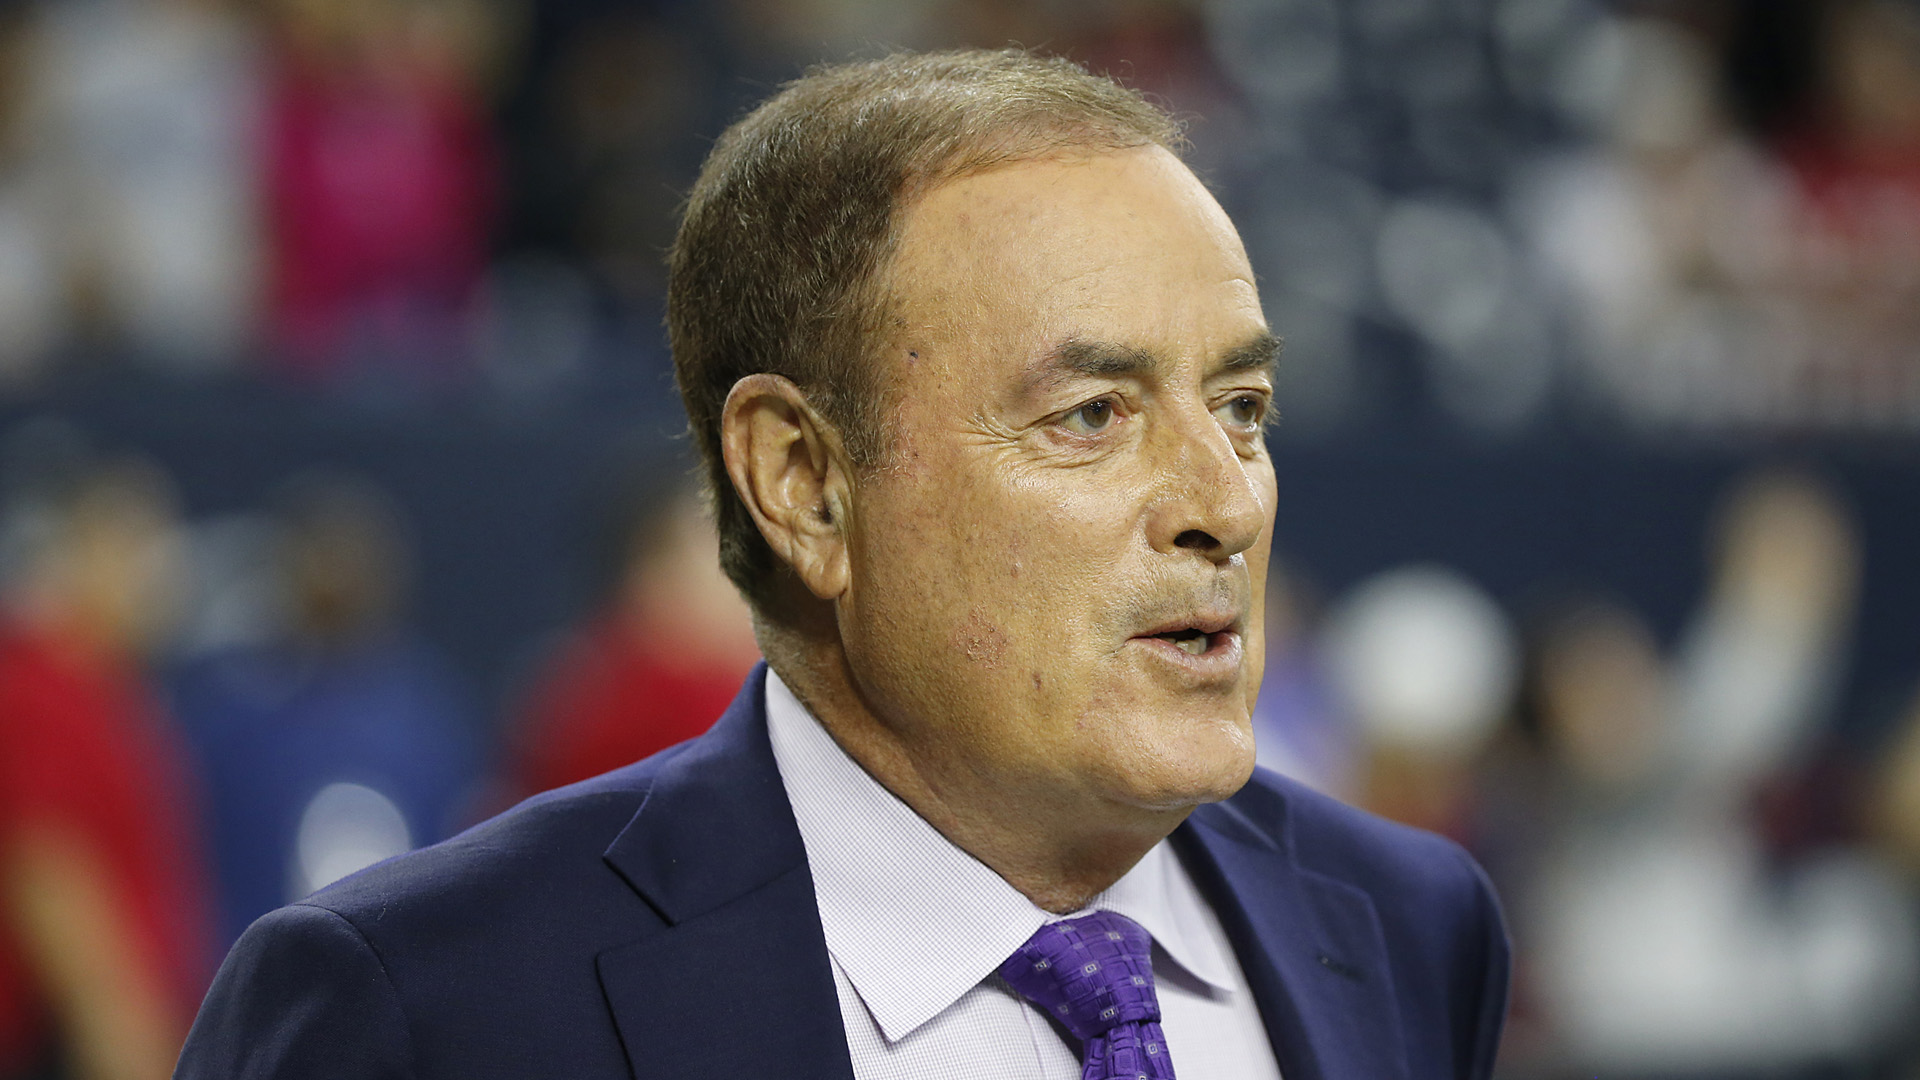 Al Michaels says Donald Trump's comments on the NFL made things worse